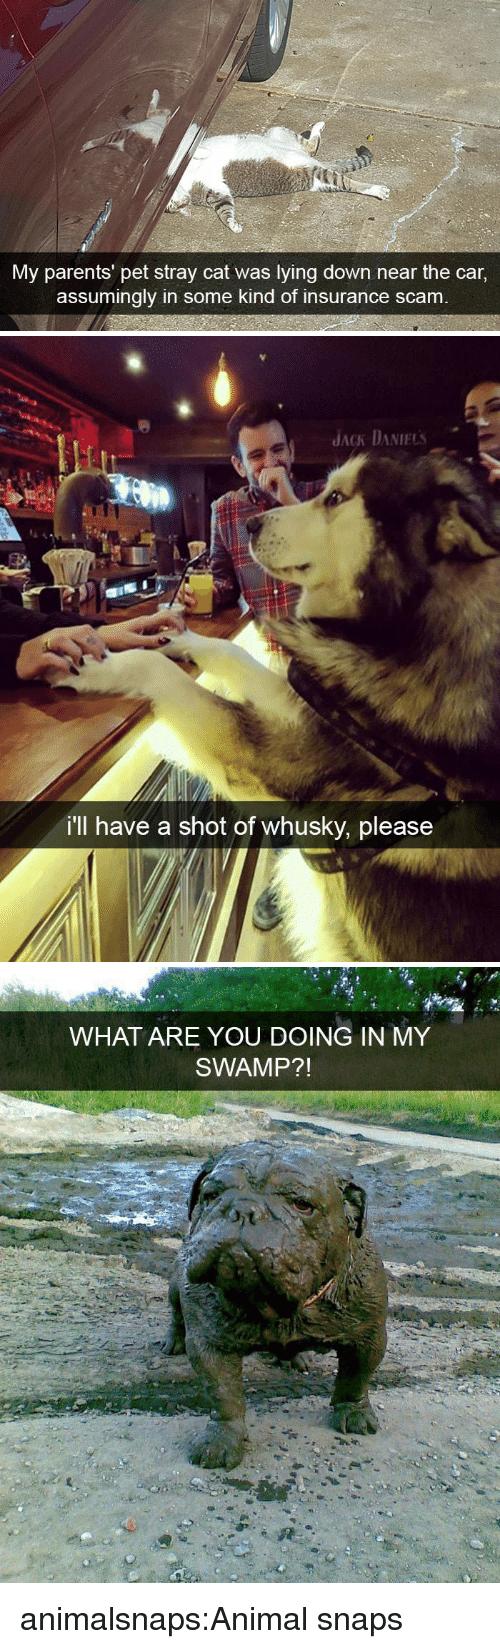 Parents, Target, and Tumblr: My parents' pet stray cat was lying down near the car,  assumingly in some kind of insurance scam   JACK DANIELs  i'll have a shot of whusky, please   WHAT ARE YOU DOING IN MY  SWAMP?! animalsnaps:Animal snaps